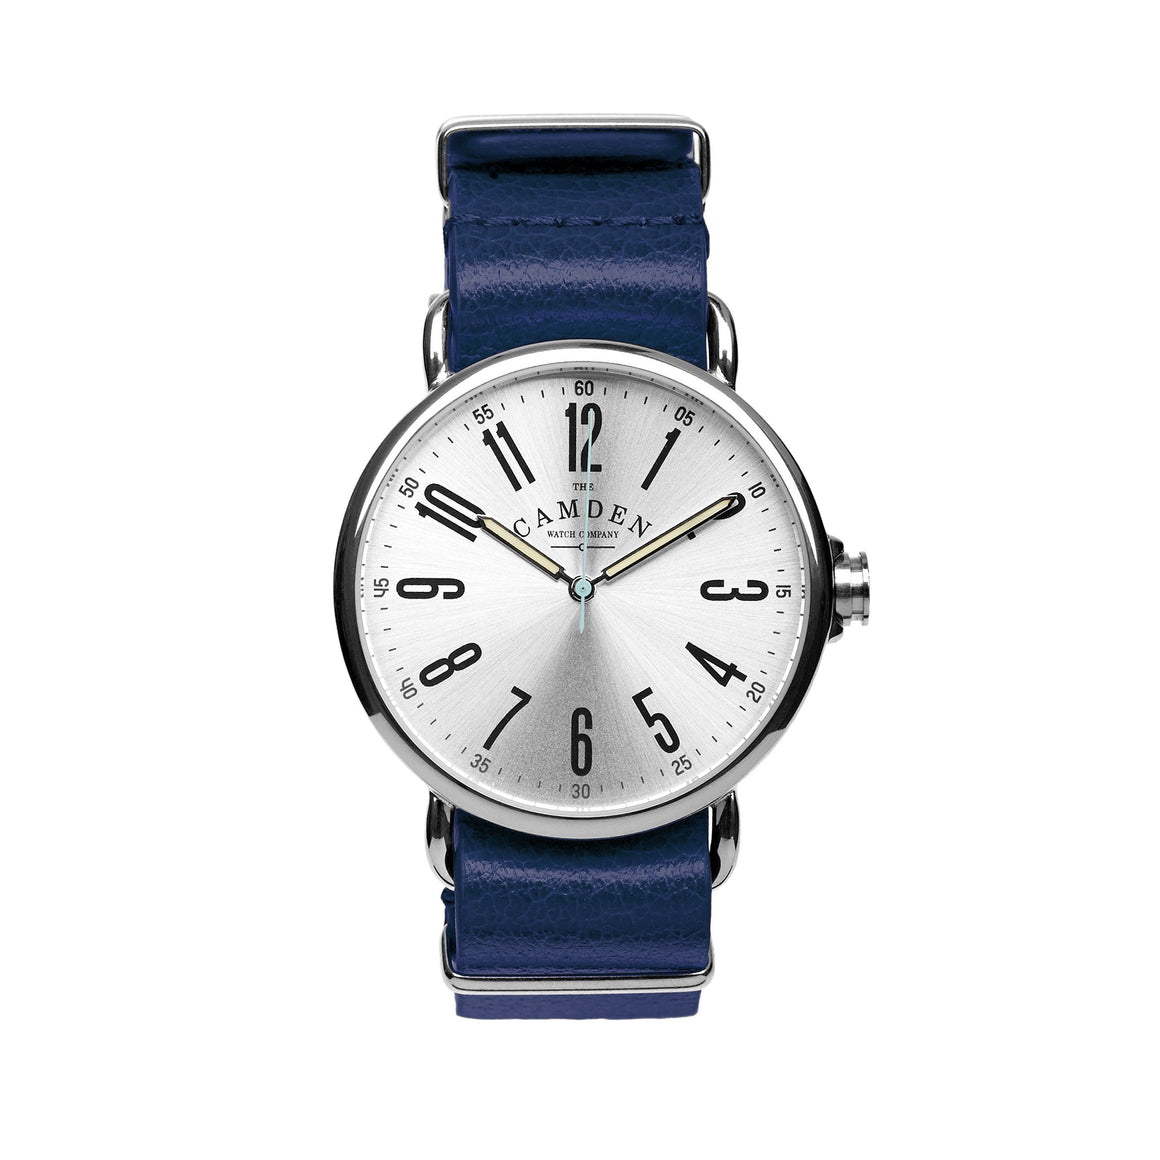 Camden Watch Company Steel Unisex Watch with Navy Blue Leather Strap